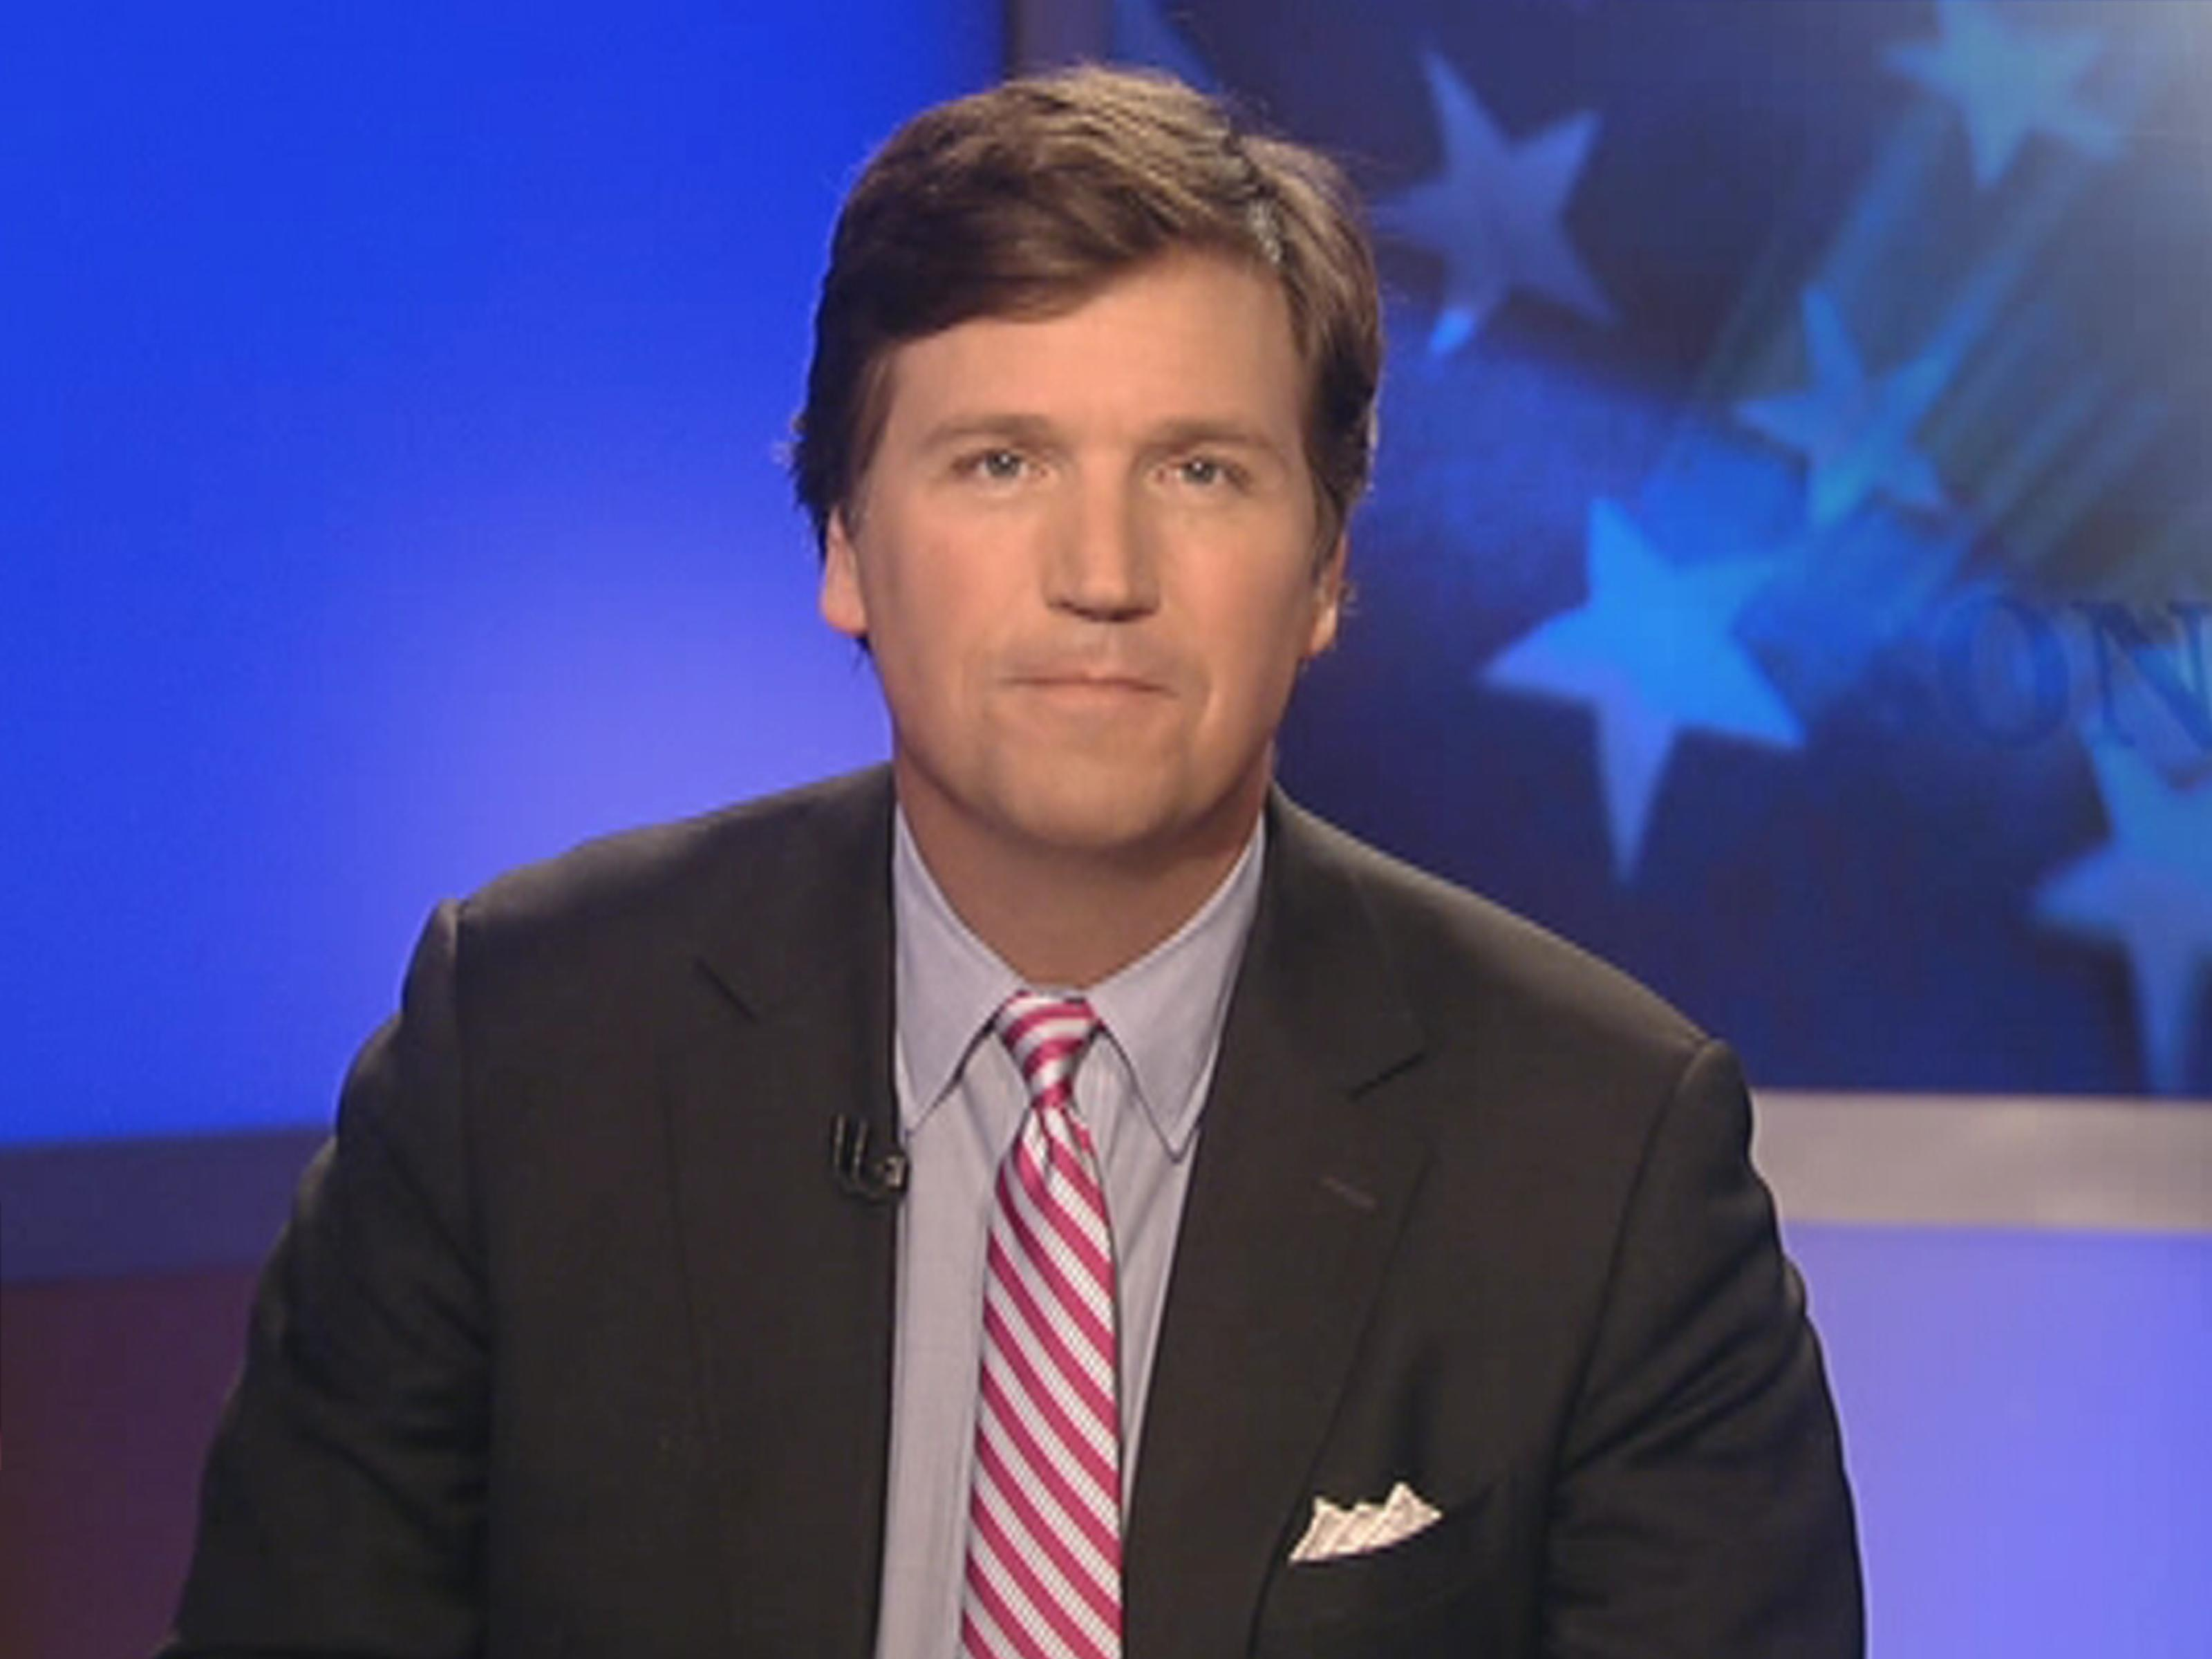 Fox News 9 p.m. ratings soar as Tucker Carlson takes over for Megyn Kelly